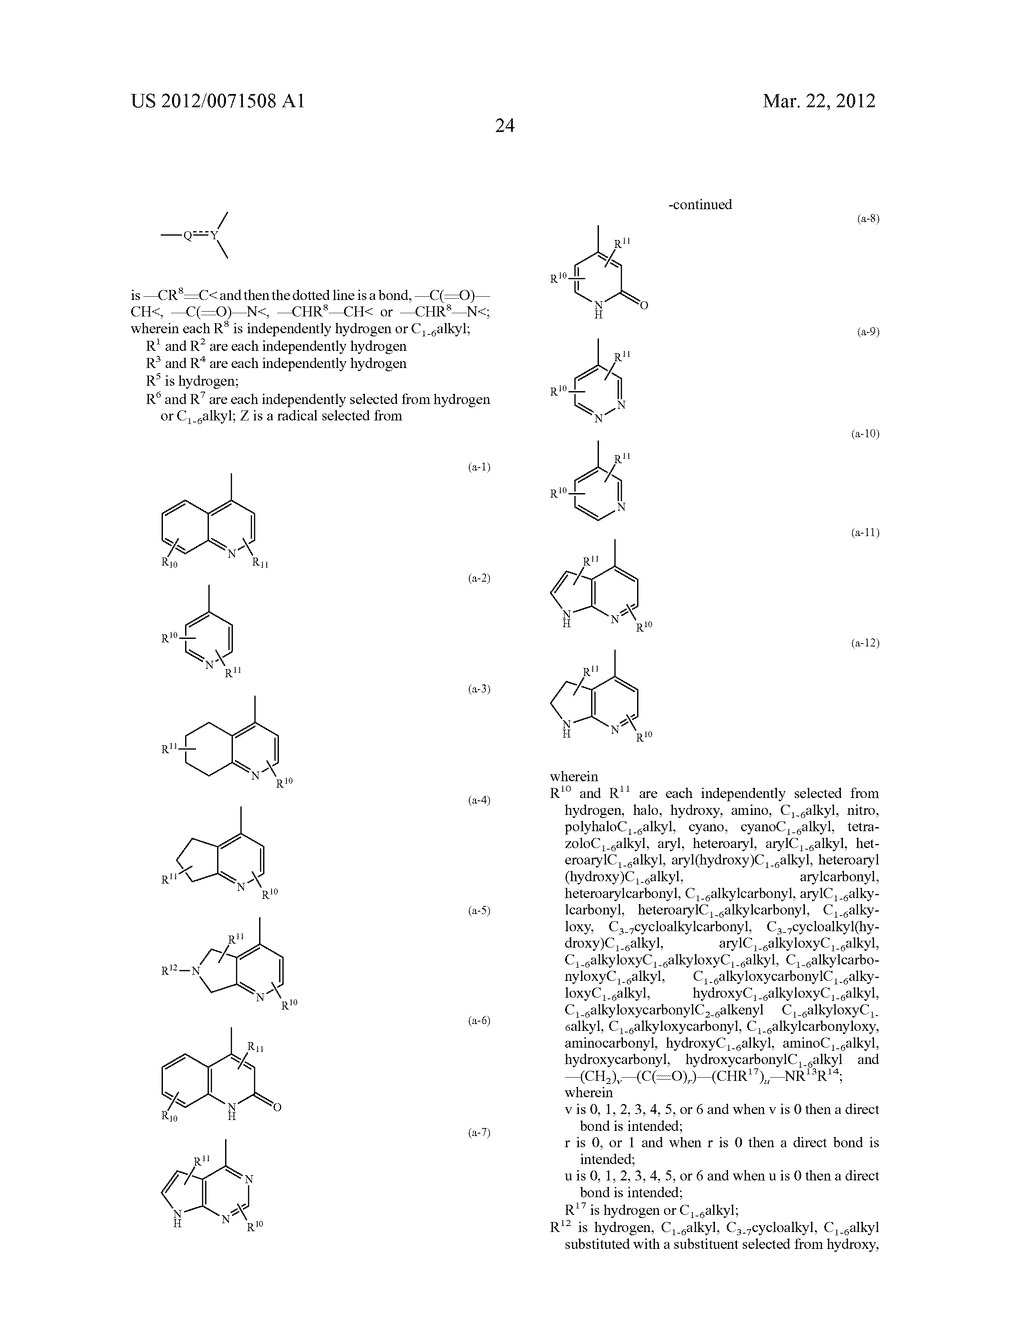 CYCLIC-ALKYLAMINE DERIVATIVES AS INHIBITORS OF THE INTERACTION BETWEEN     MDM2 AND P53 - diagram, schematic, and image 25